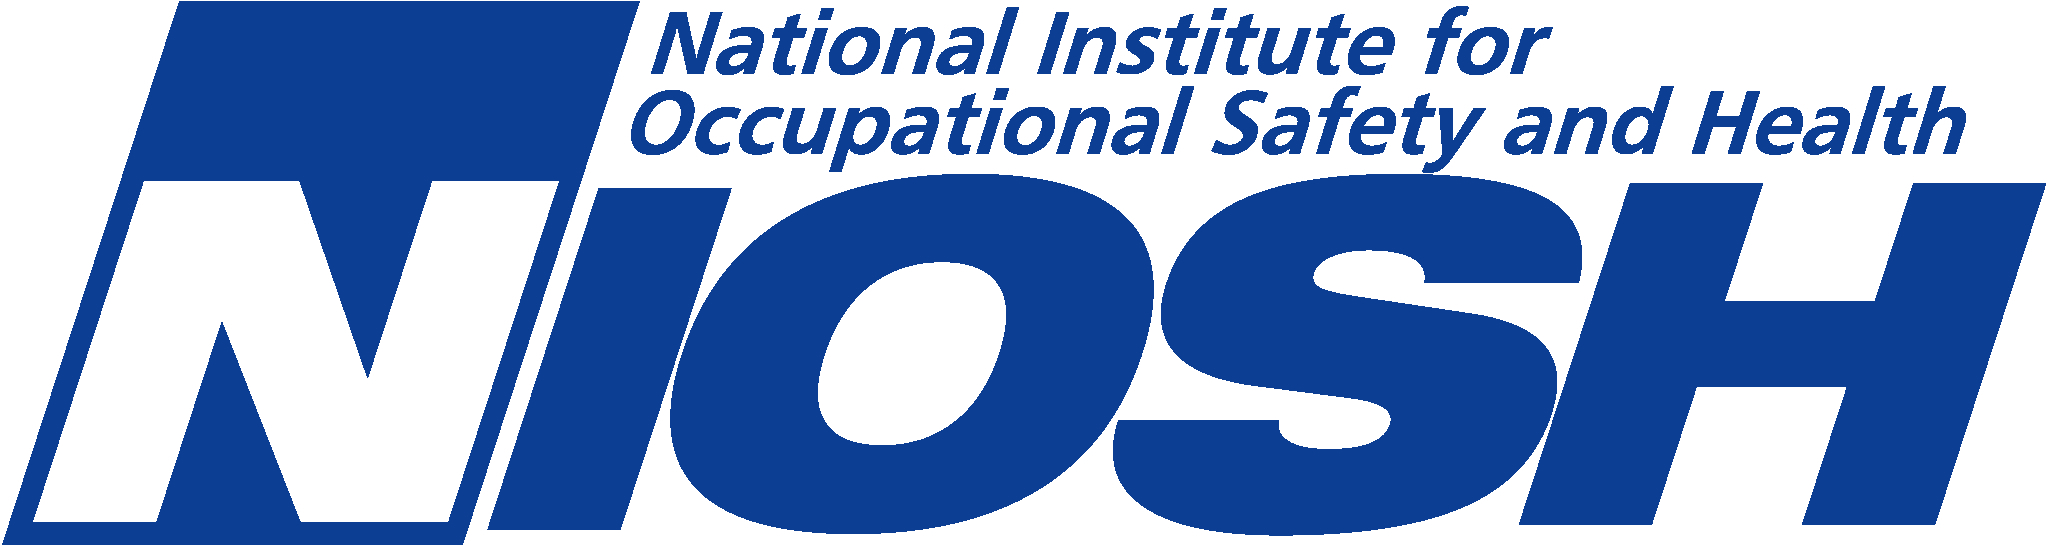 logo_NIOSH